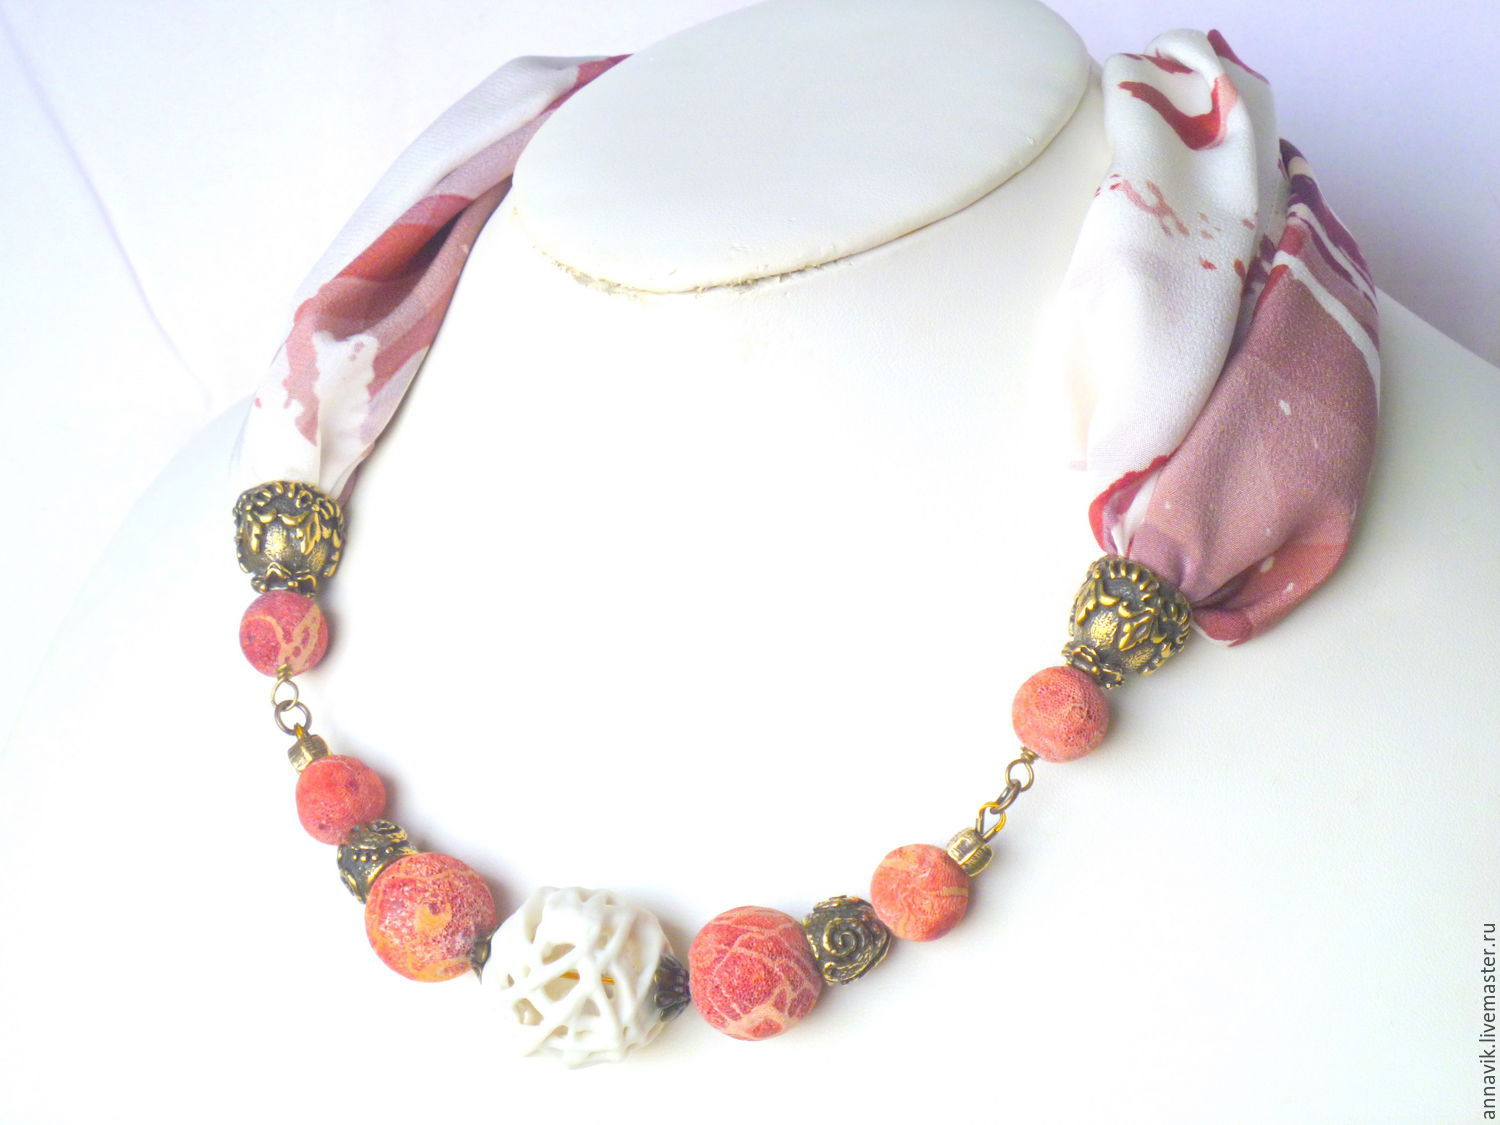 en polymer handmade myway and made necklace silk cords in with clay elements of necklaces